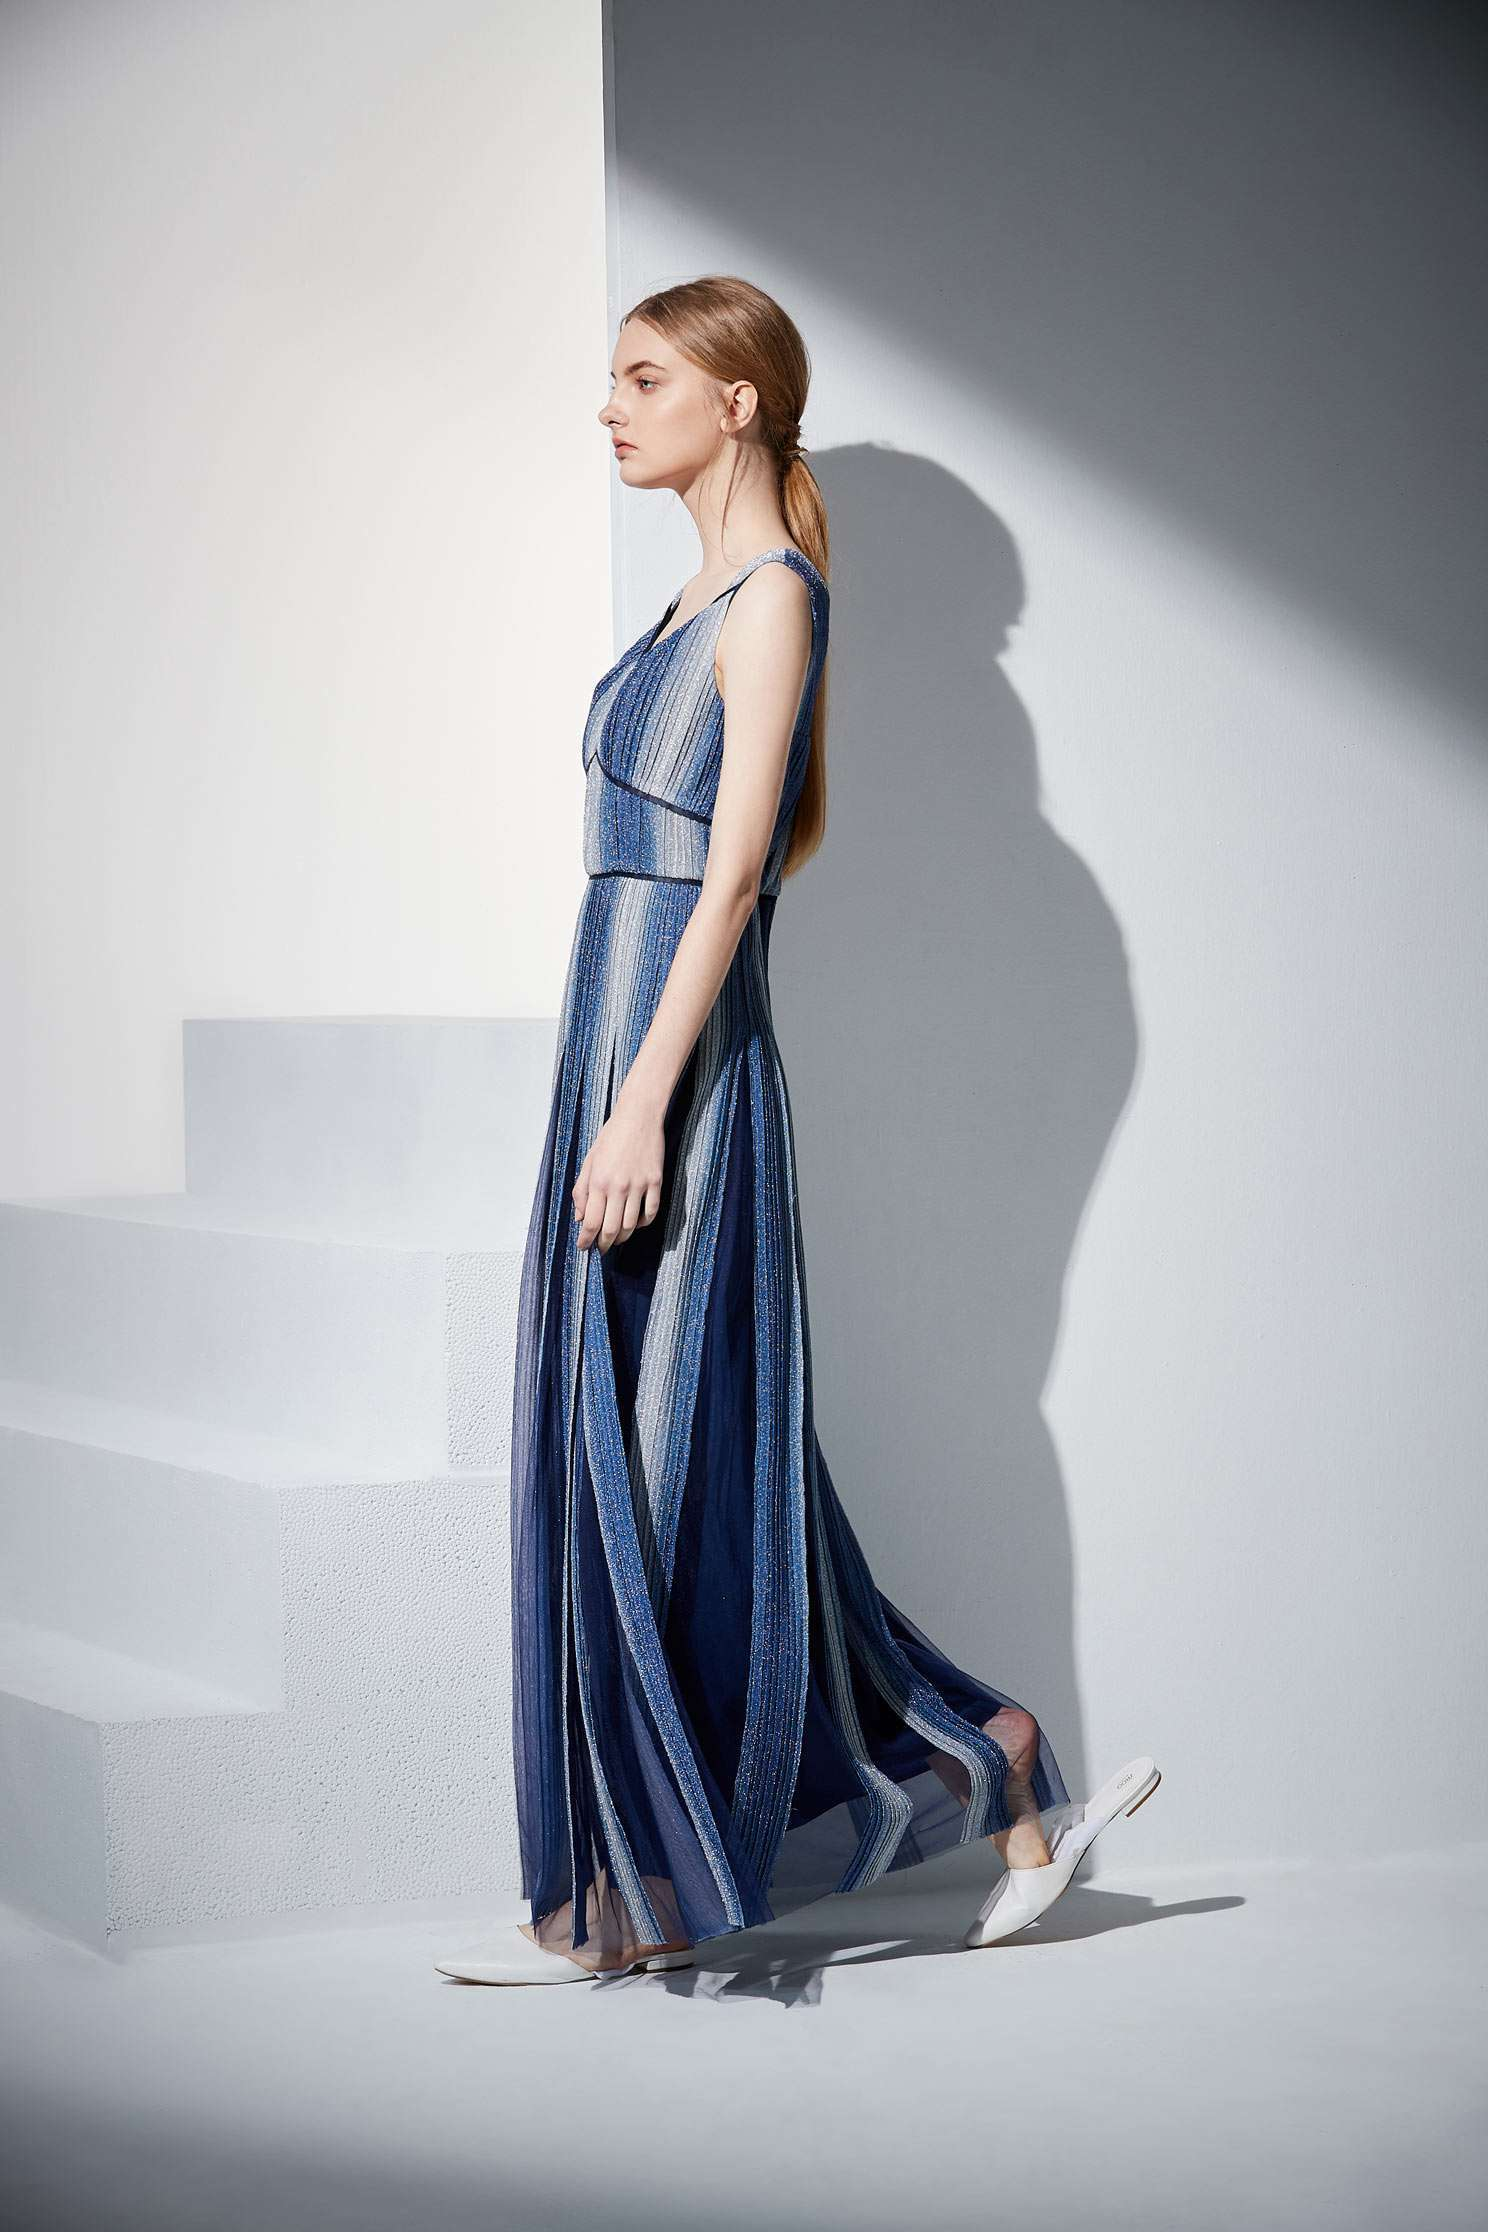 Gradient navy blue dress,Cocktail Dress,無袖洋裝,Evening Wear,Long dress